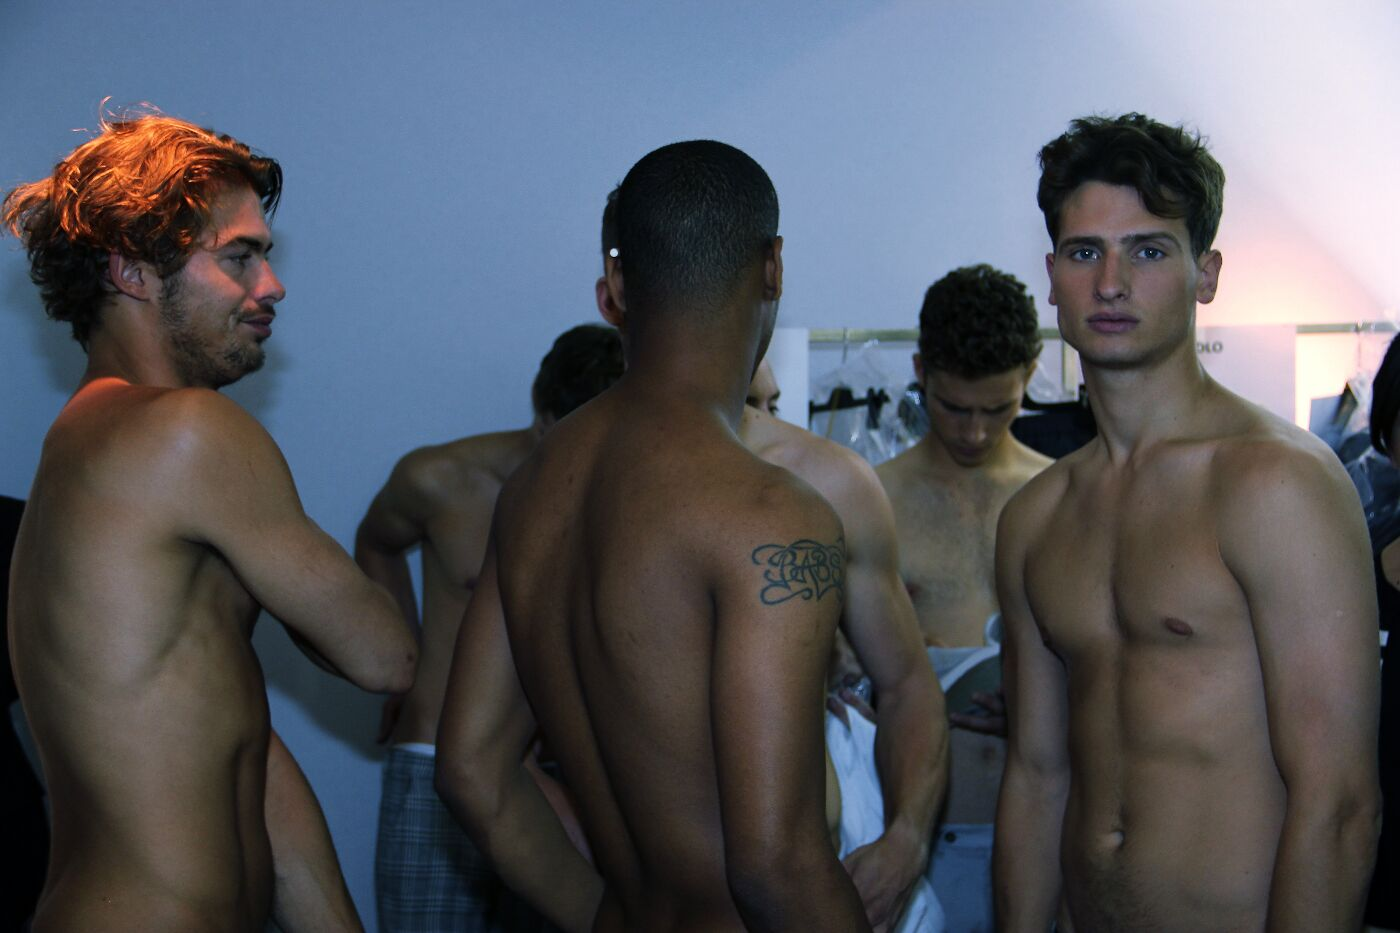 backstage-ermanno-scervino-2012-backstage-spring-summer-2012-milano-fashion-week-ermanno-scervino